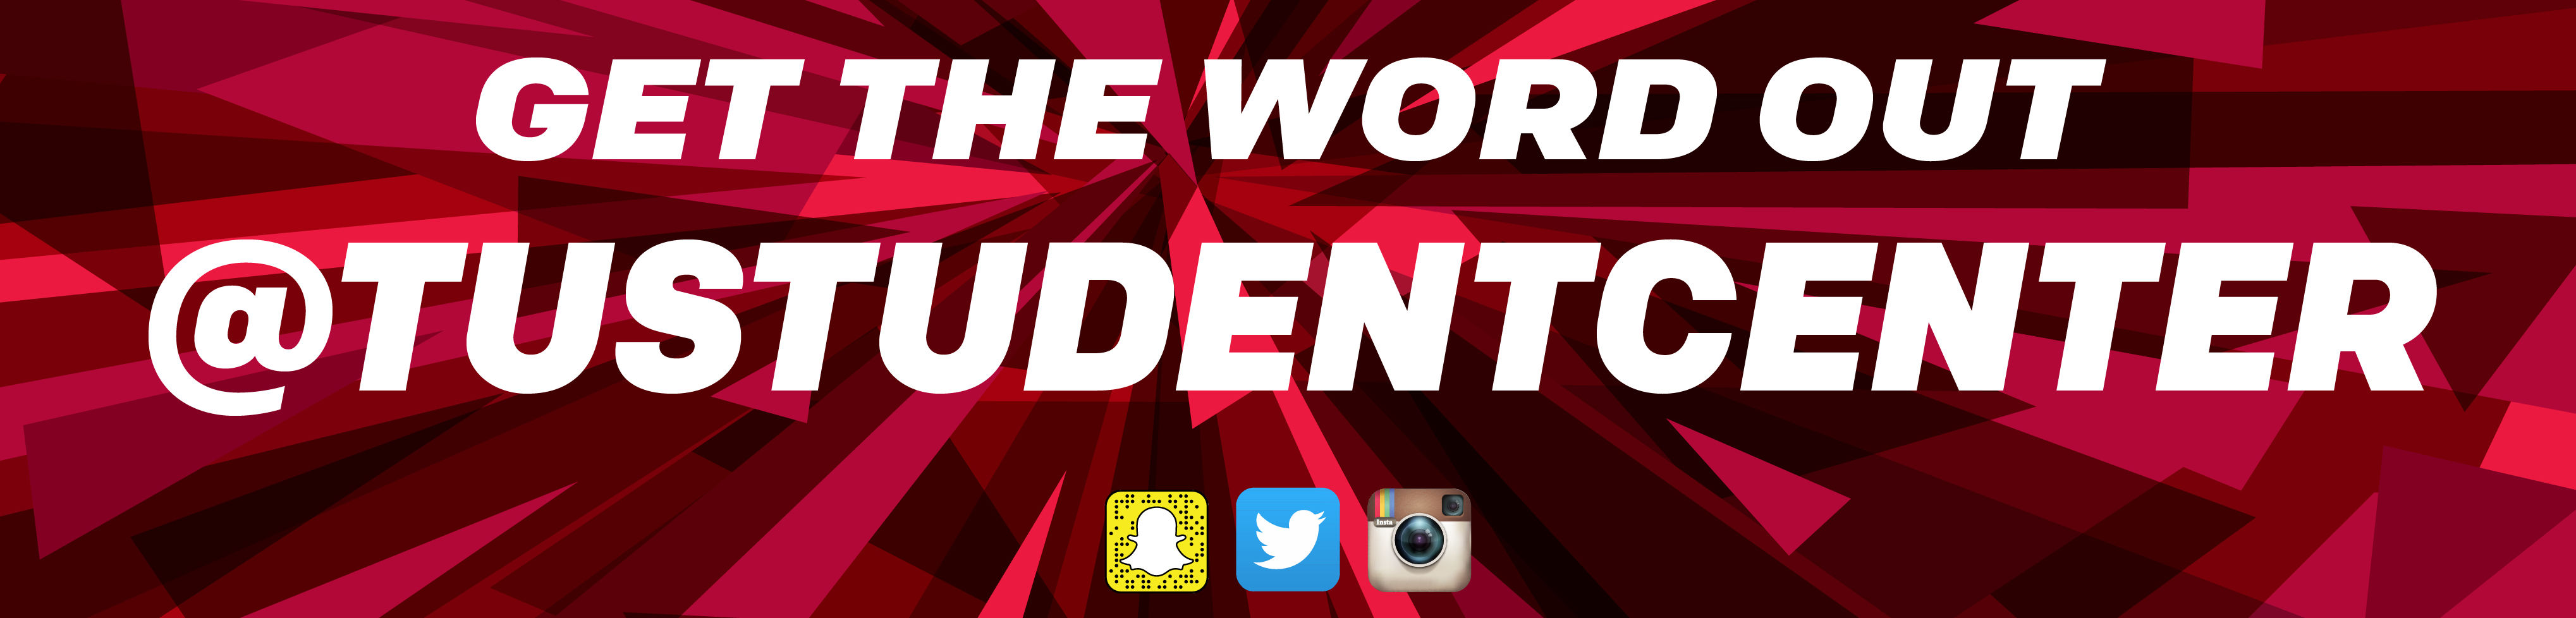 Get the word out @TUSTUDENTCENTER